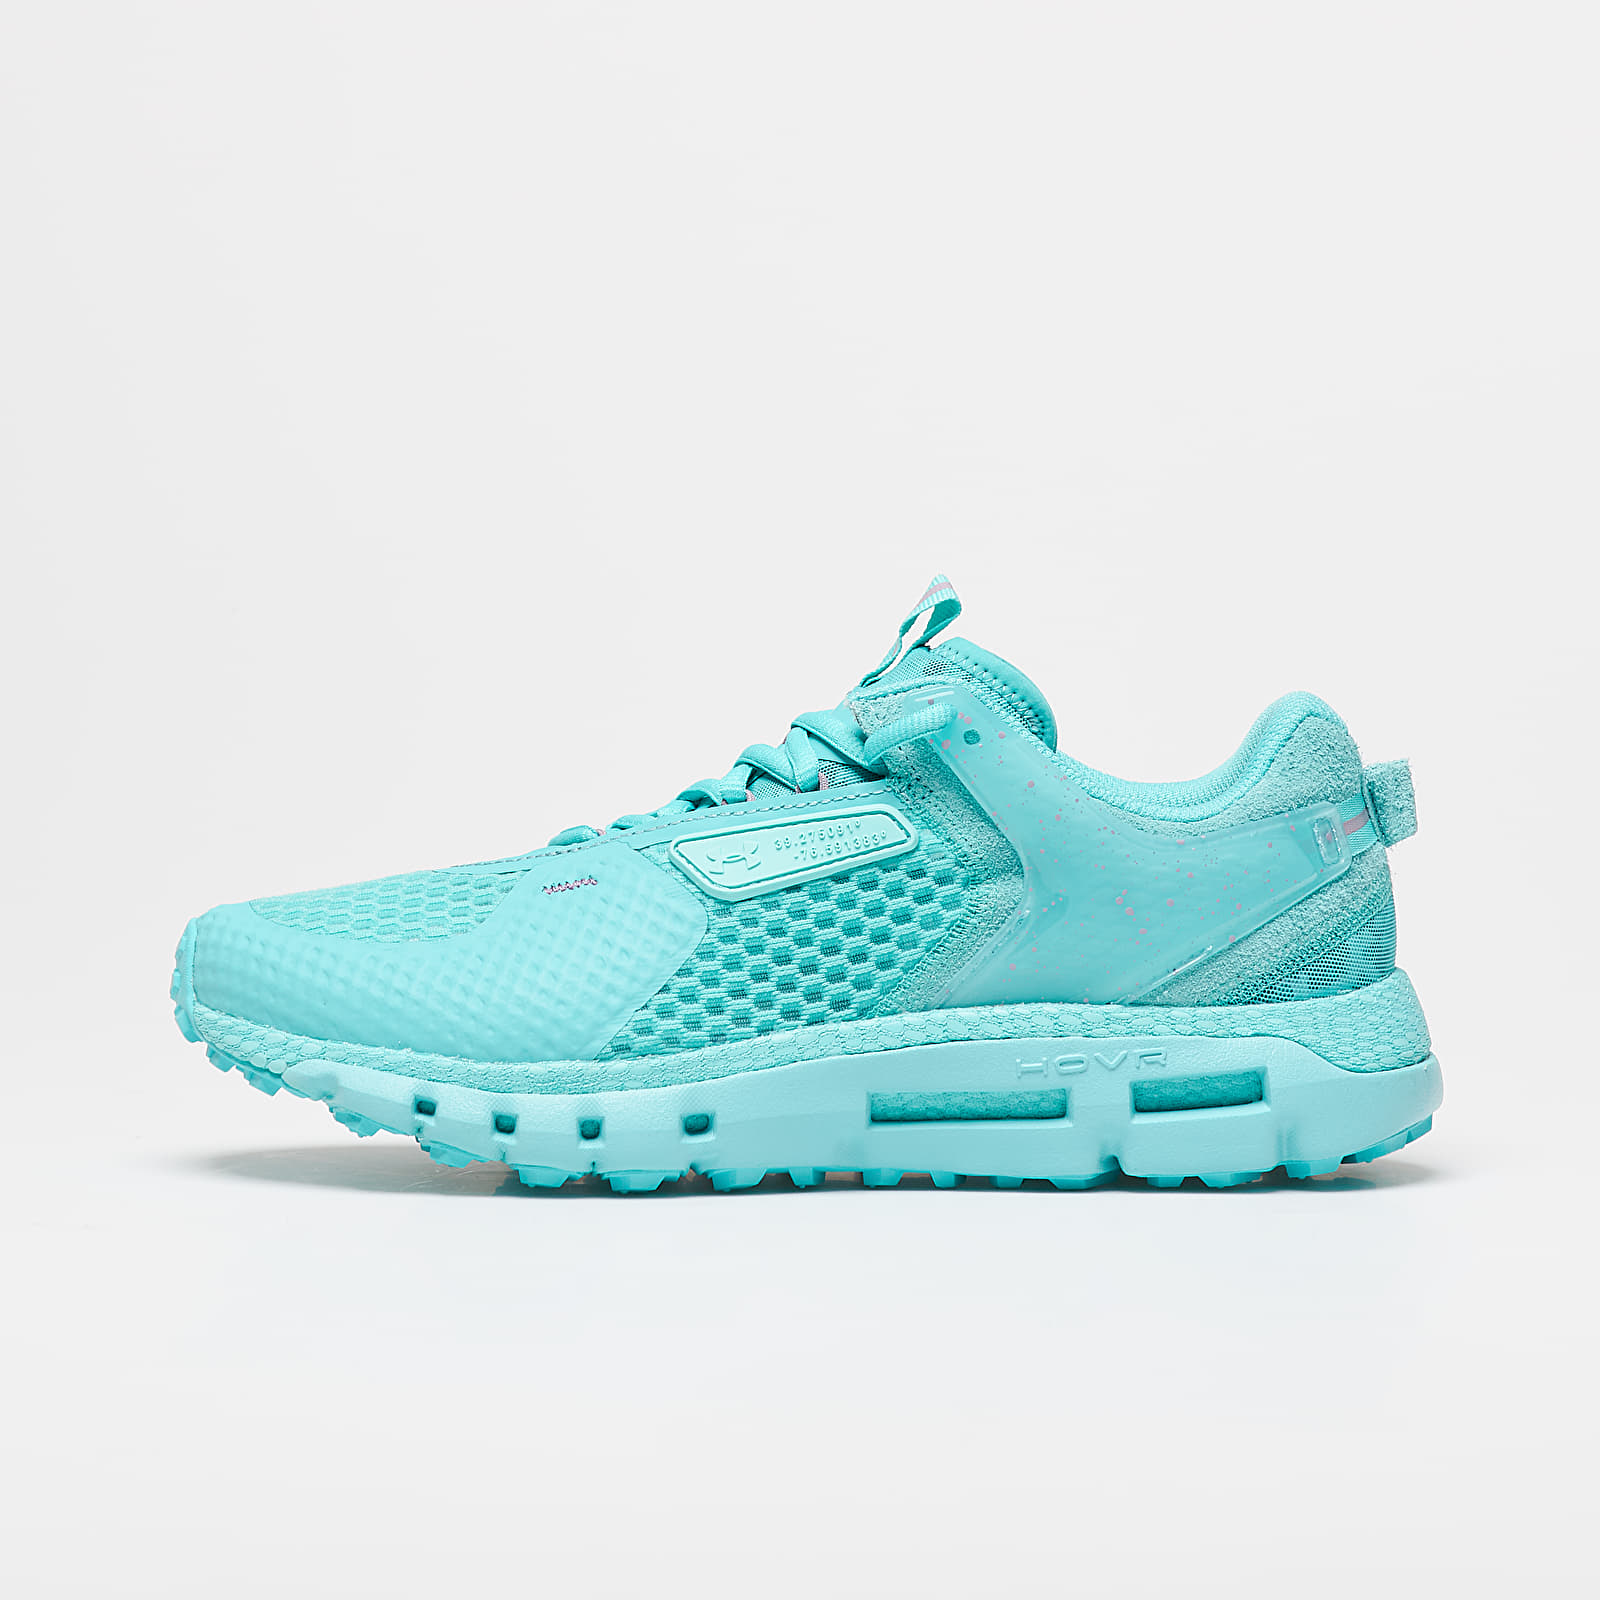 Under Armour HOVR Under Armour HOVR Summit URBN TXT Radial Turquoise/ Purple Haze